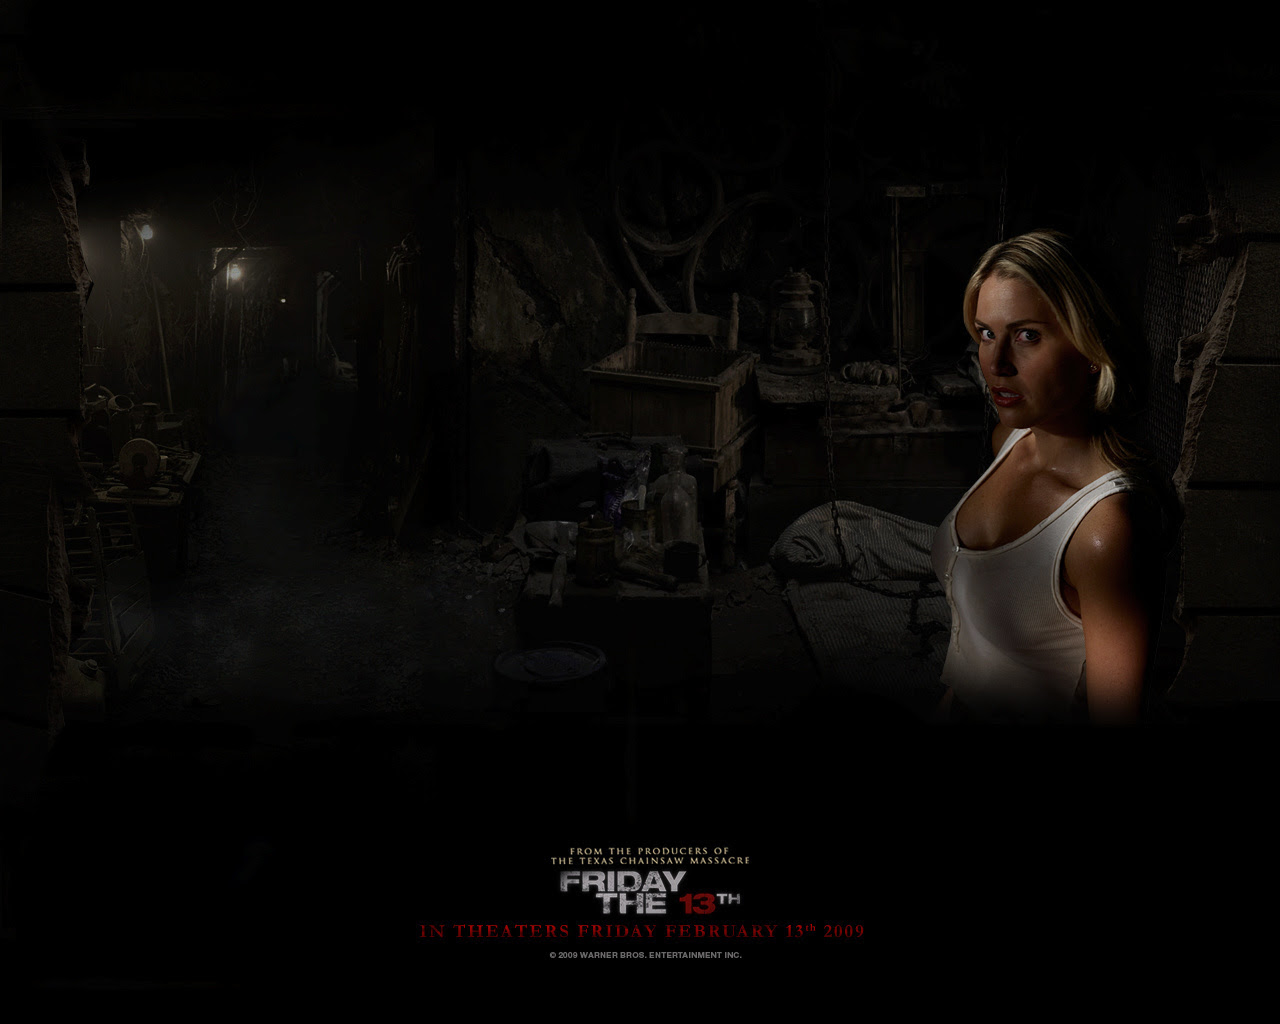 Friday The 13th Friday The 13th 2009 Wallpaper 3971550 Fanpop